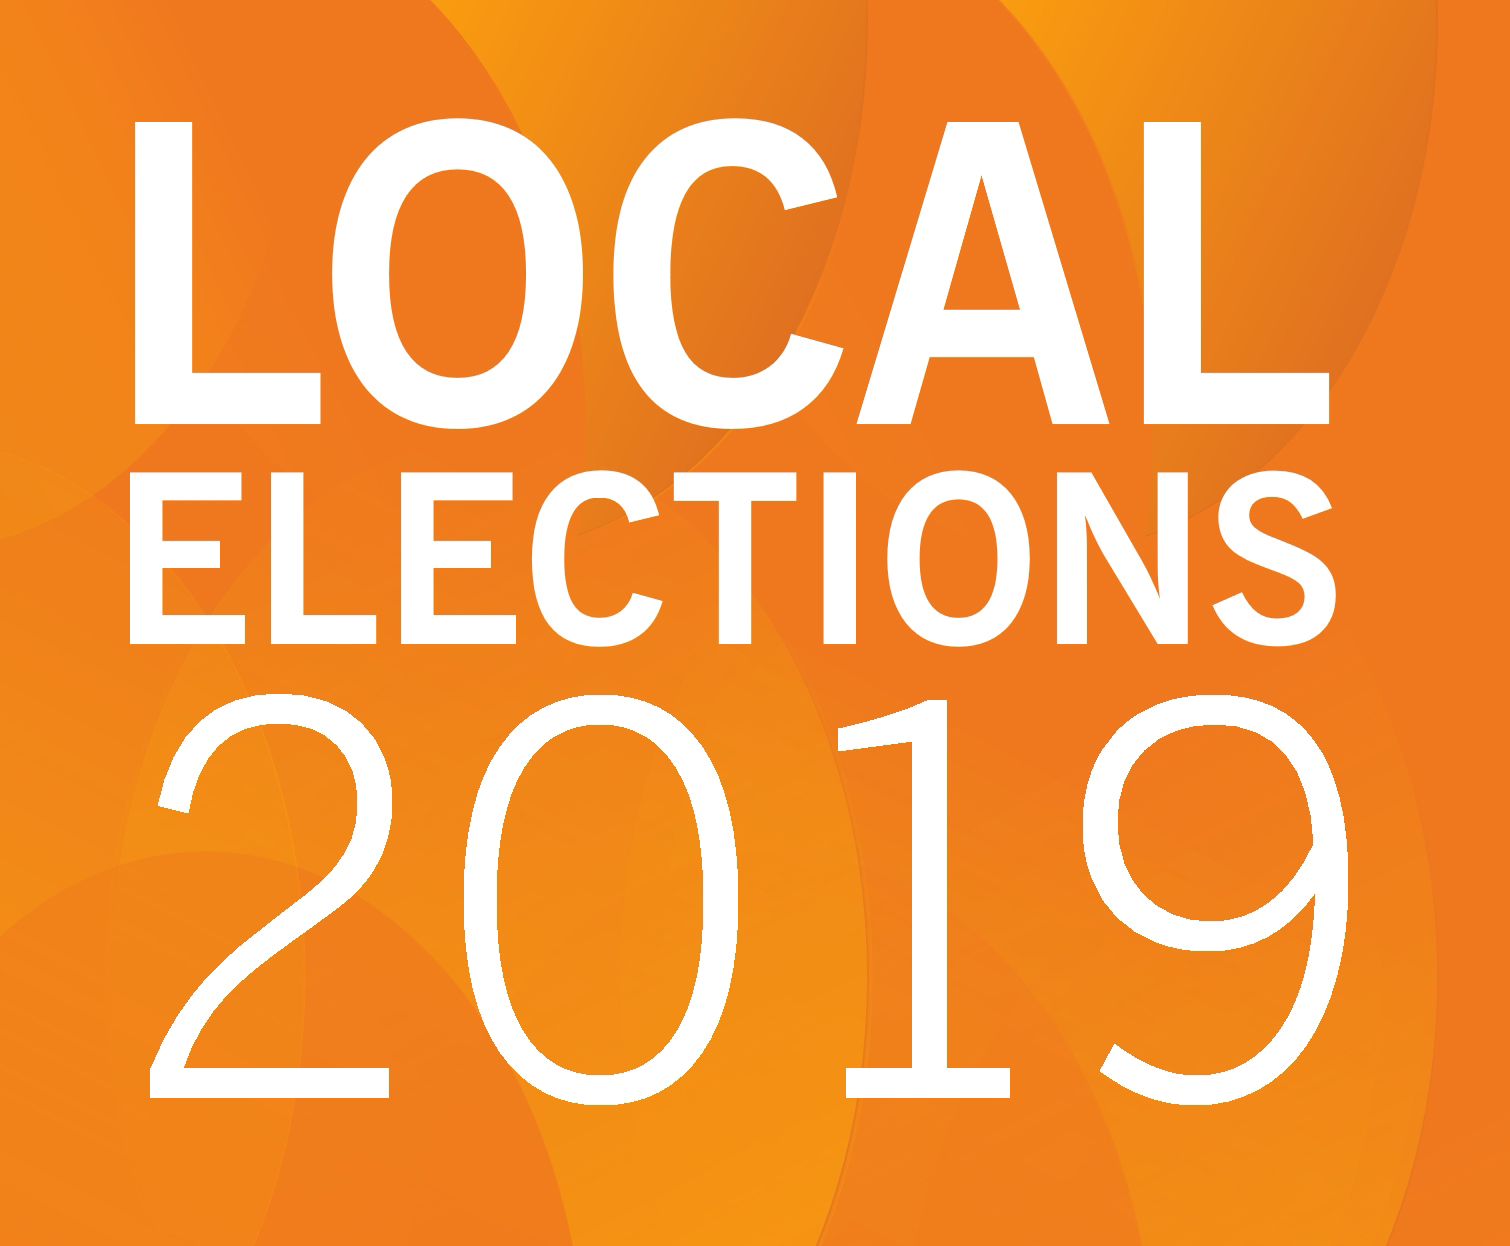 2019-local-elections.jpg